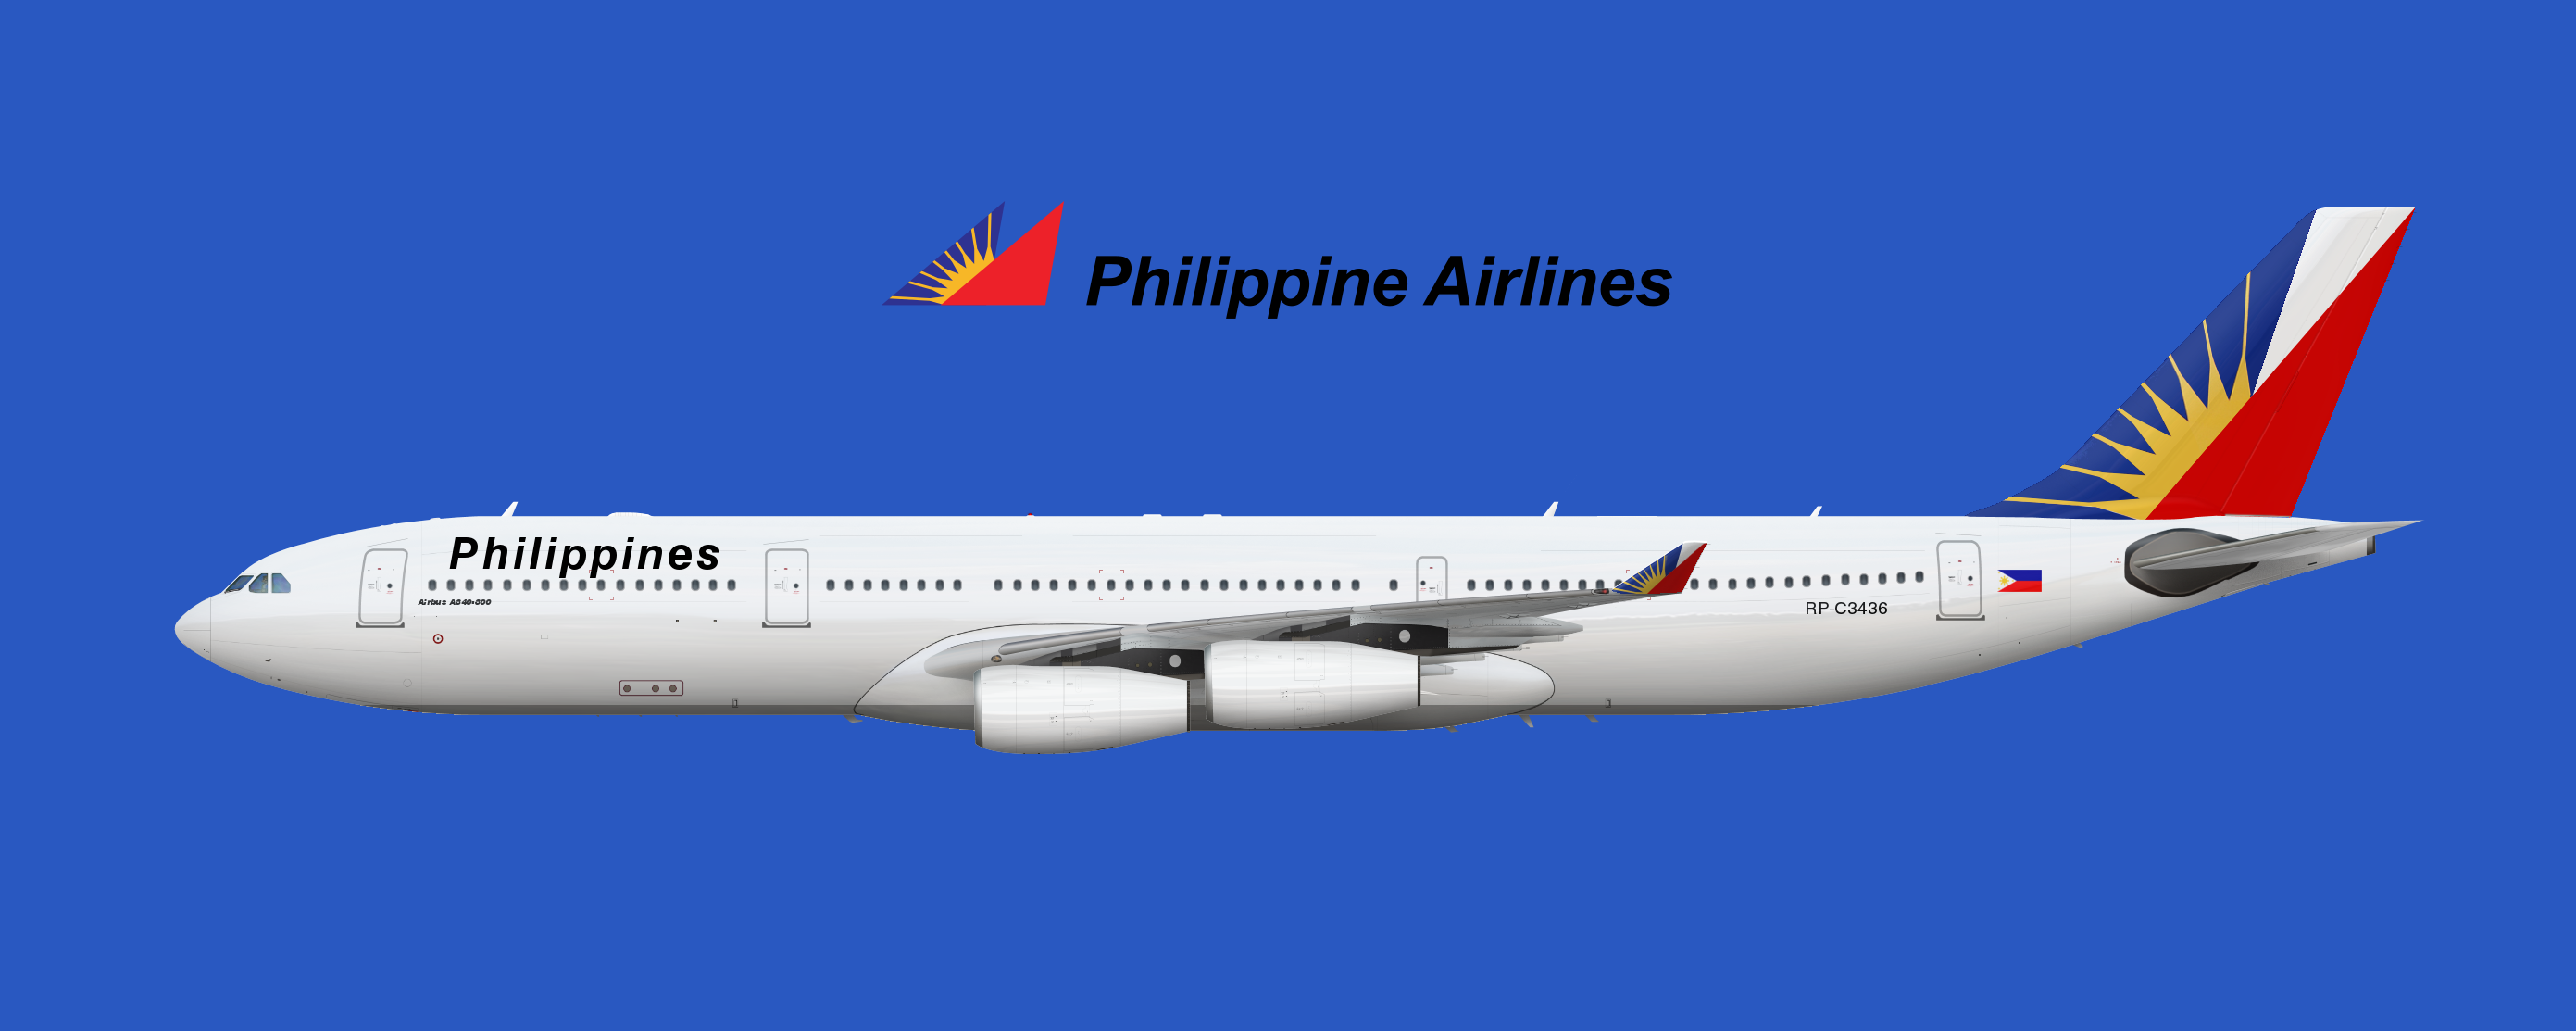 mission statement of philippine airlines What is philippine airlines vision and mission statement philippine airlines (pal) began life with a noble mission: to serve as a partner in nation-building with this in mind, pal took to the skies on 15 march 1941, using a beech m odel 18 aircraft amid the specter of a global war.